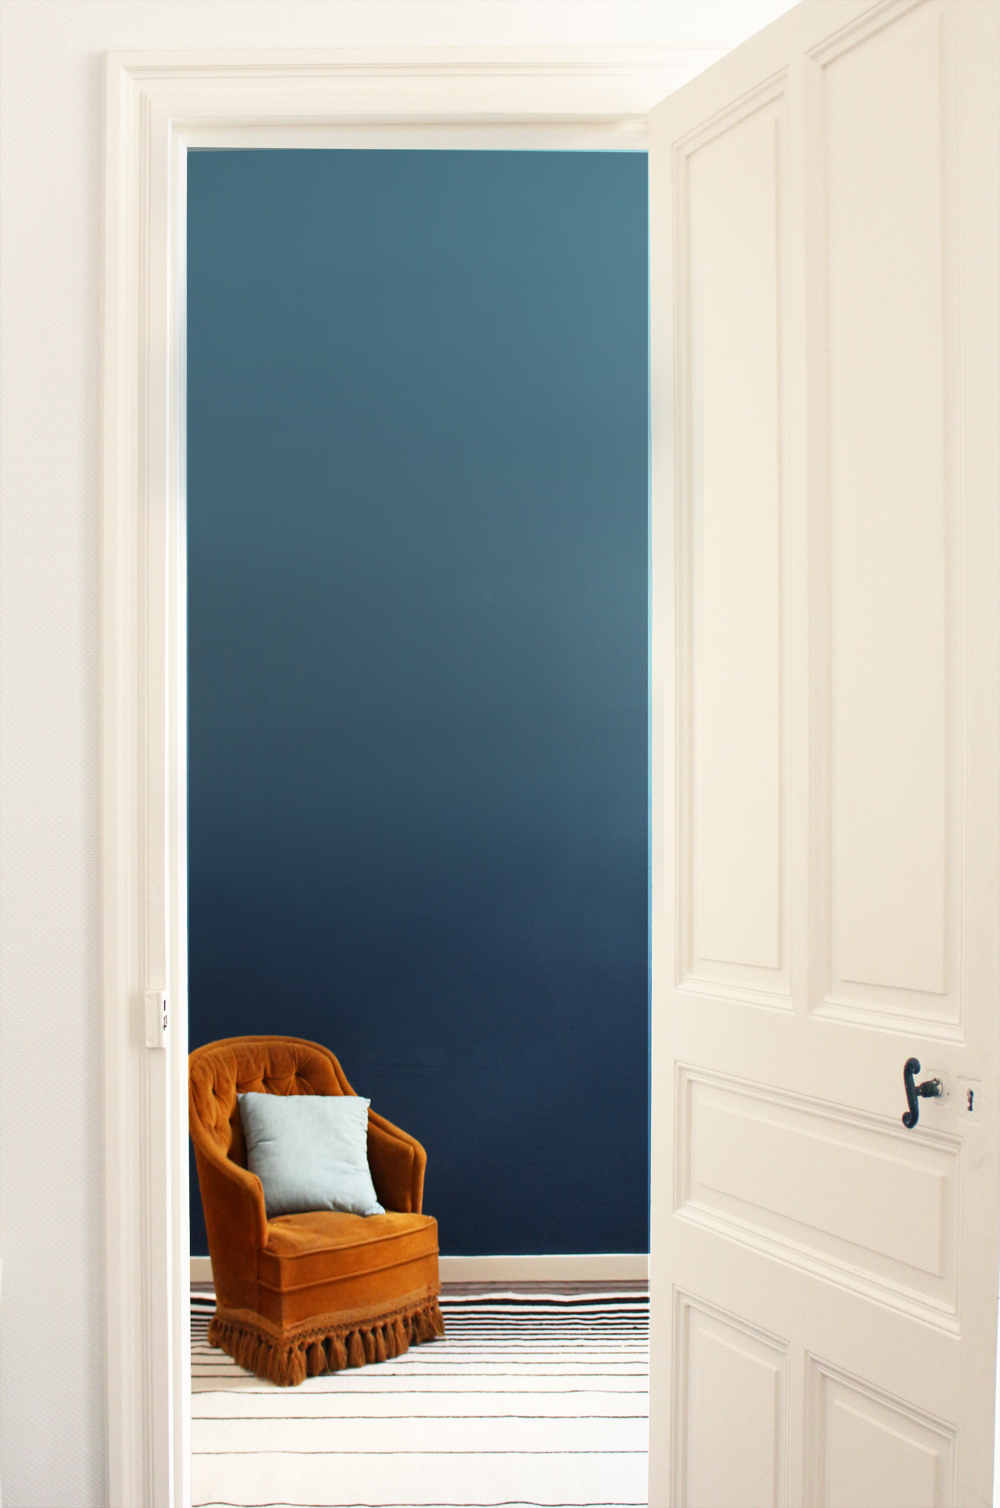 Don't mess with the rabbit - DIY ombre wall - mercadier - fauteuil